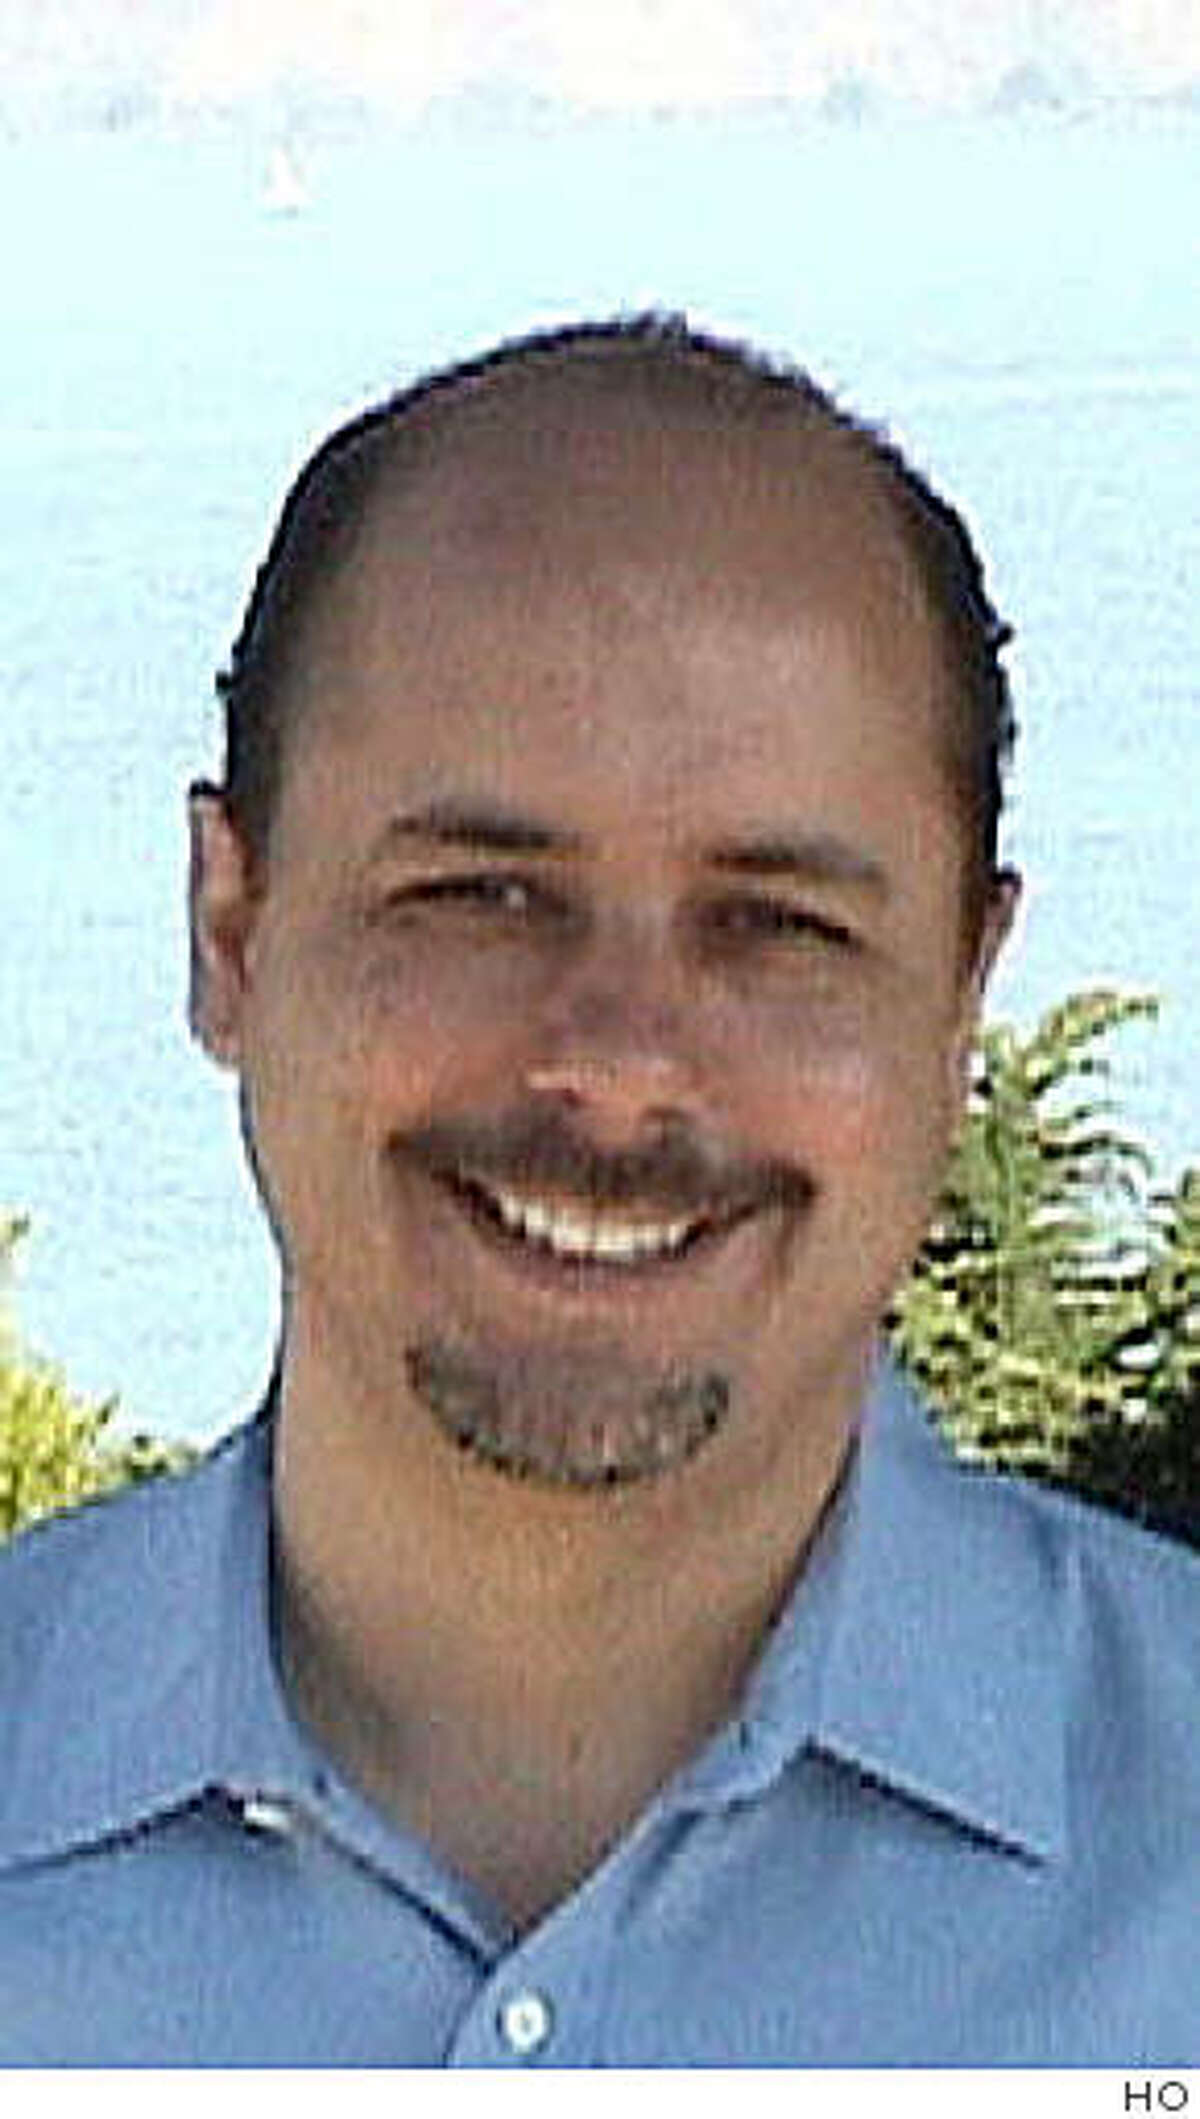 Mark Sanchez.JPG Mark Sanchez, S.F. school board member who is running for re-election in November. HO Ran on: 10-22-2004 Calloway Ran on: 07-27-2006 Ran on: 07-27-2006